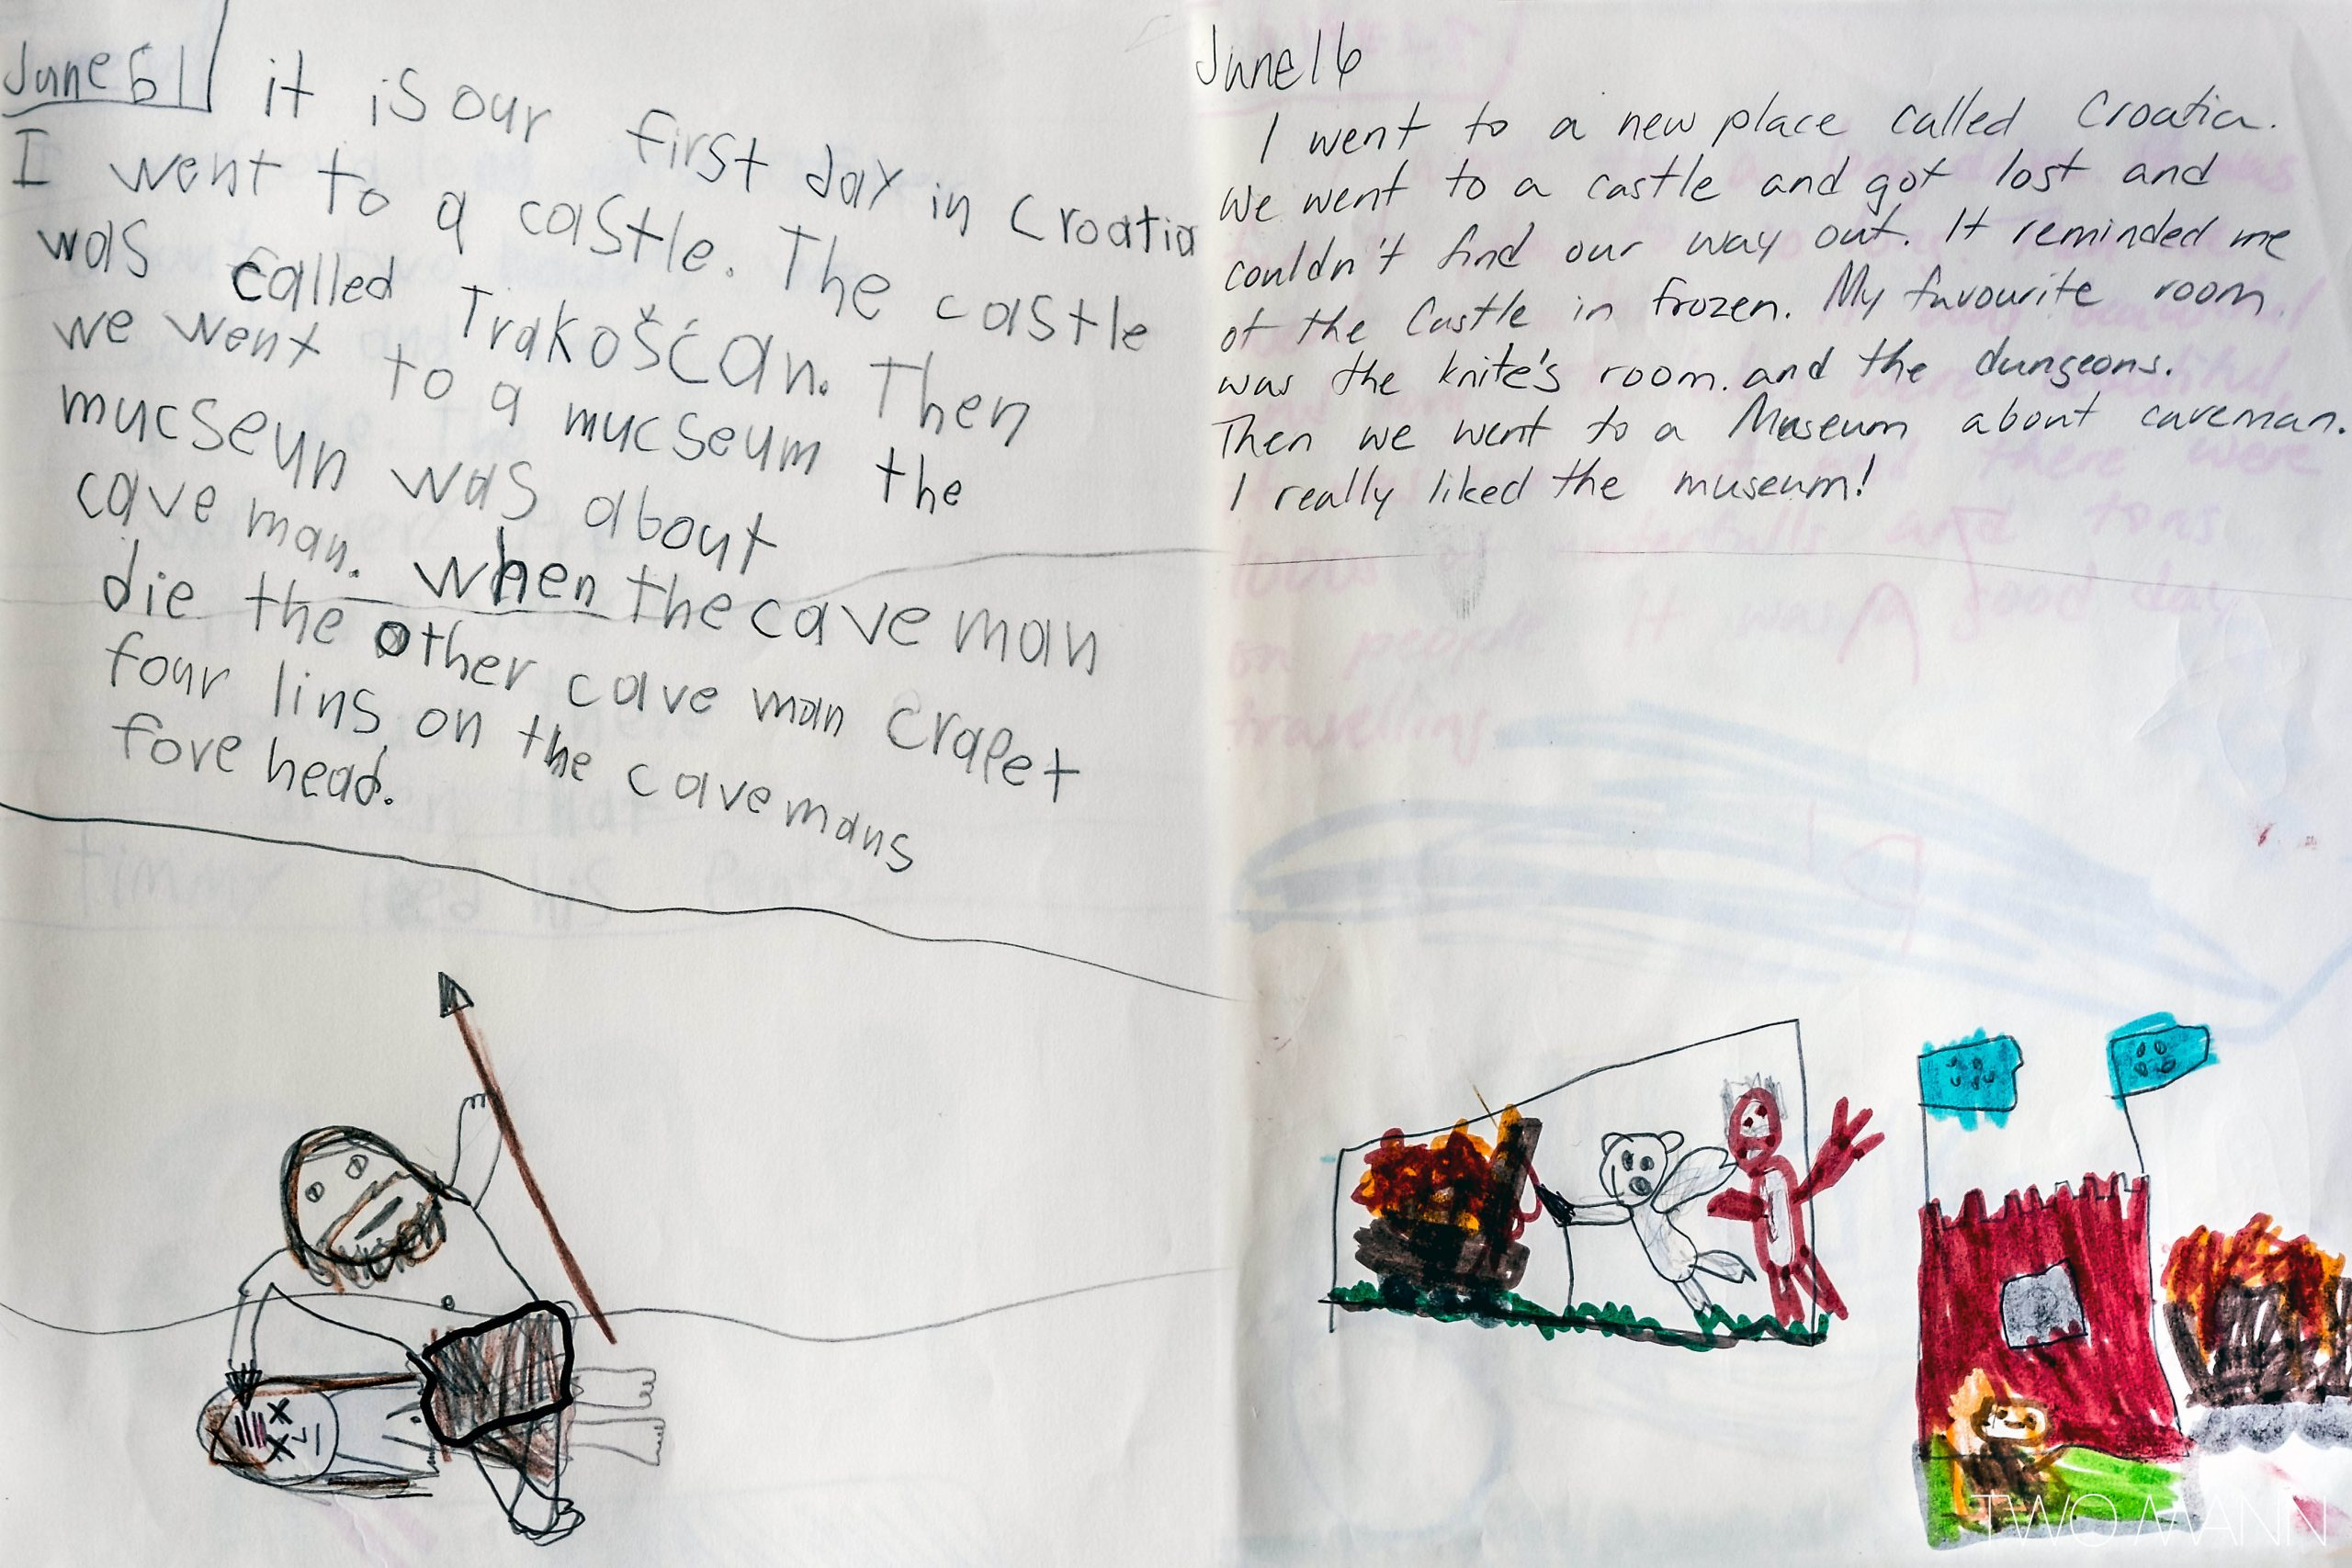 Child's journal entry of trip to Croatia